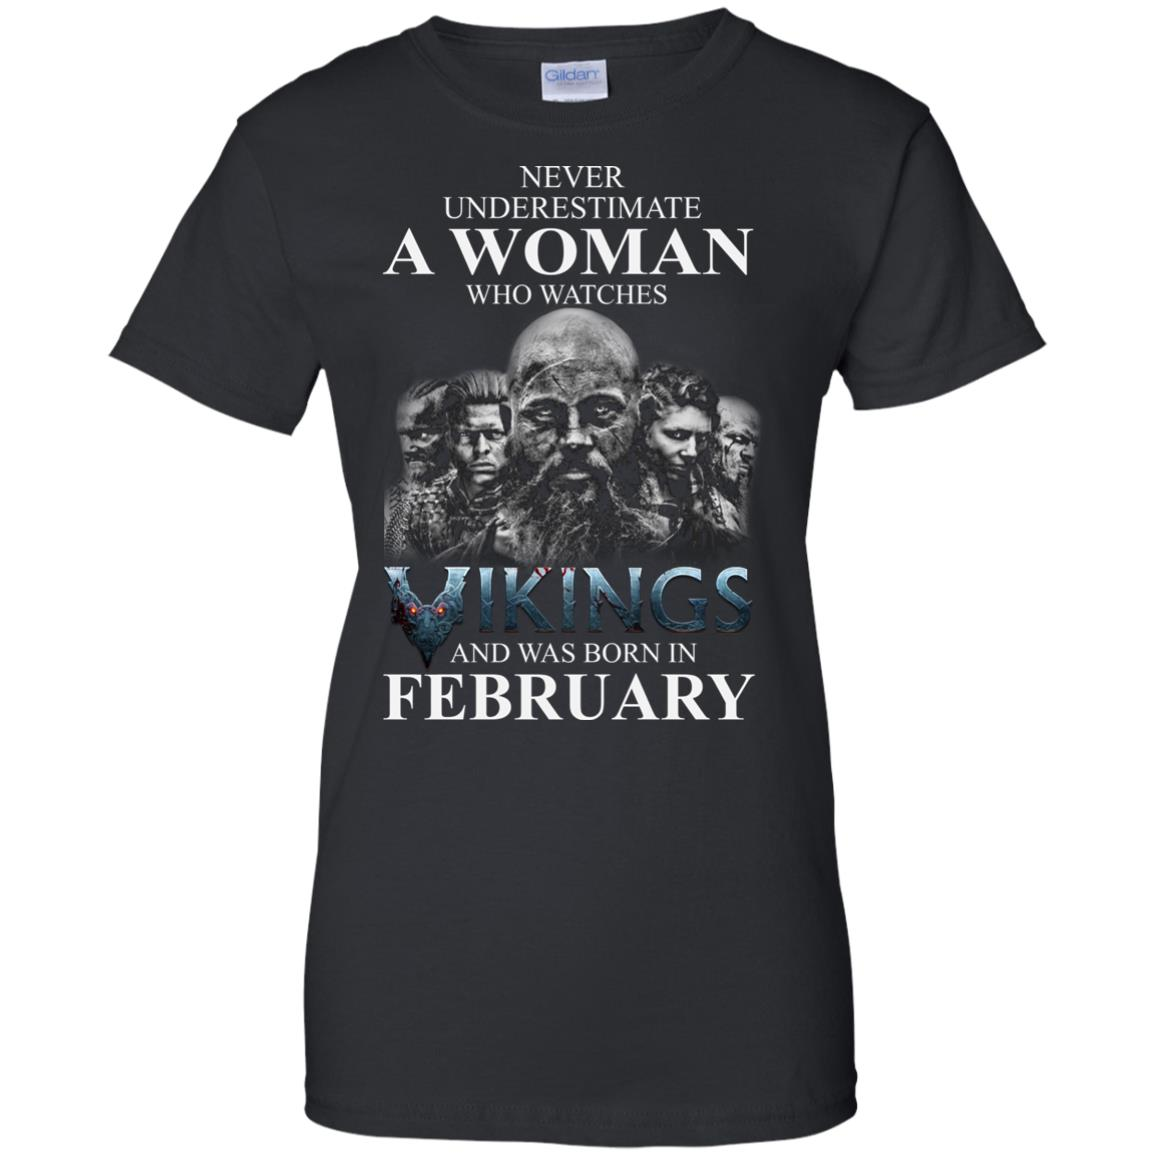 image 1349 - Never Underestimate A woman who watches Vikings and was born in February shirt